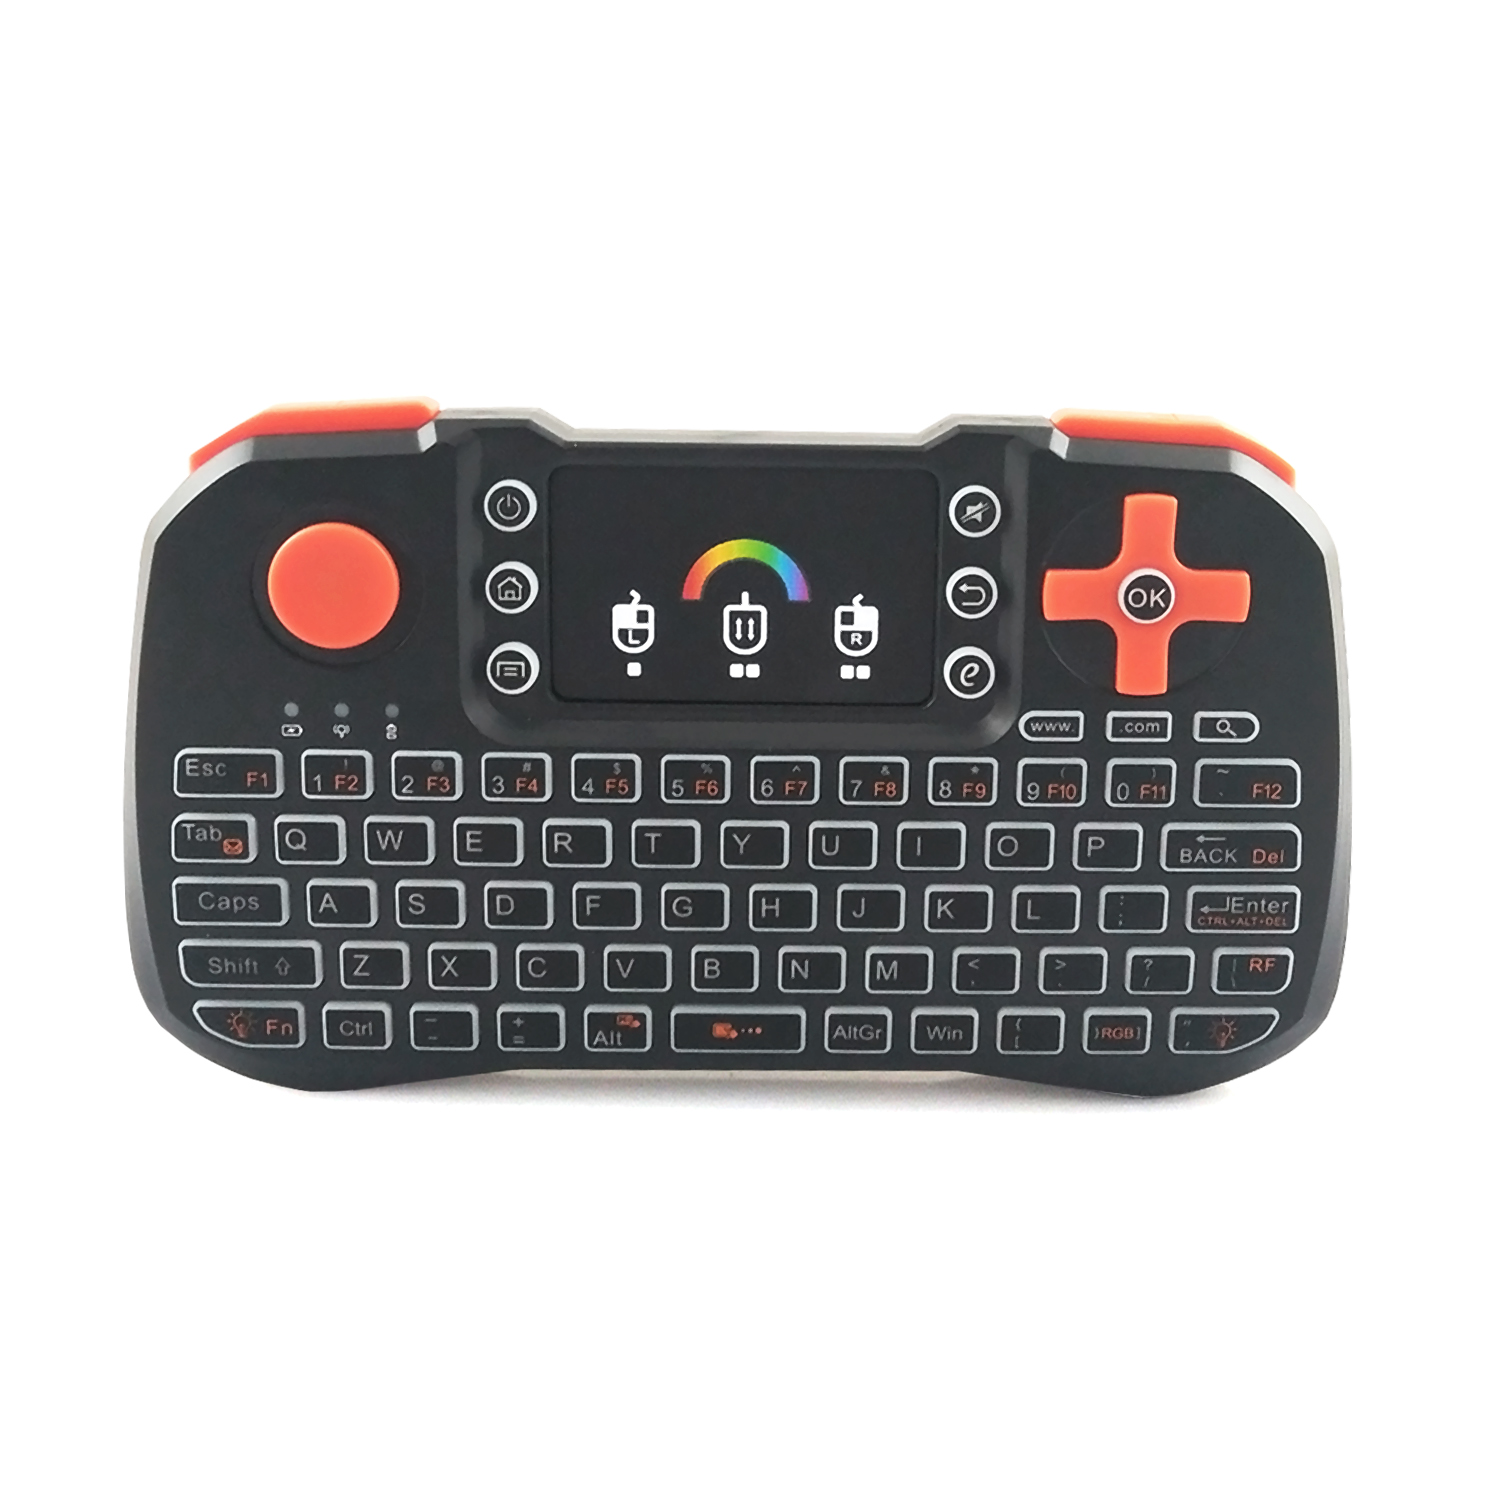 Remote Control Backlit Touchpad Wireless Keyboard For PC Laptop Android TV Box